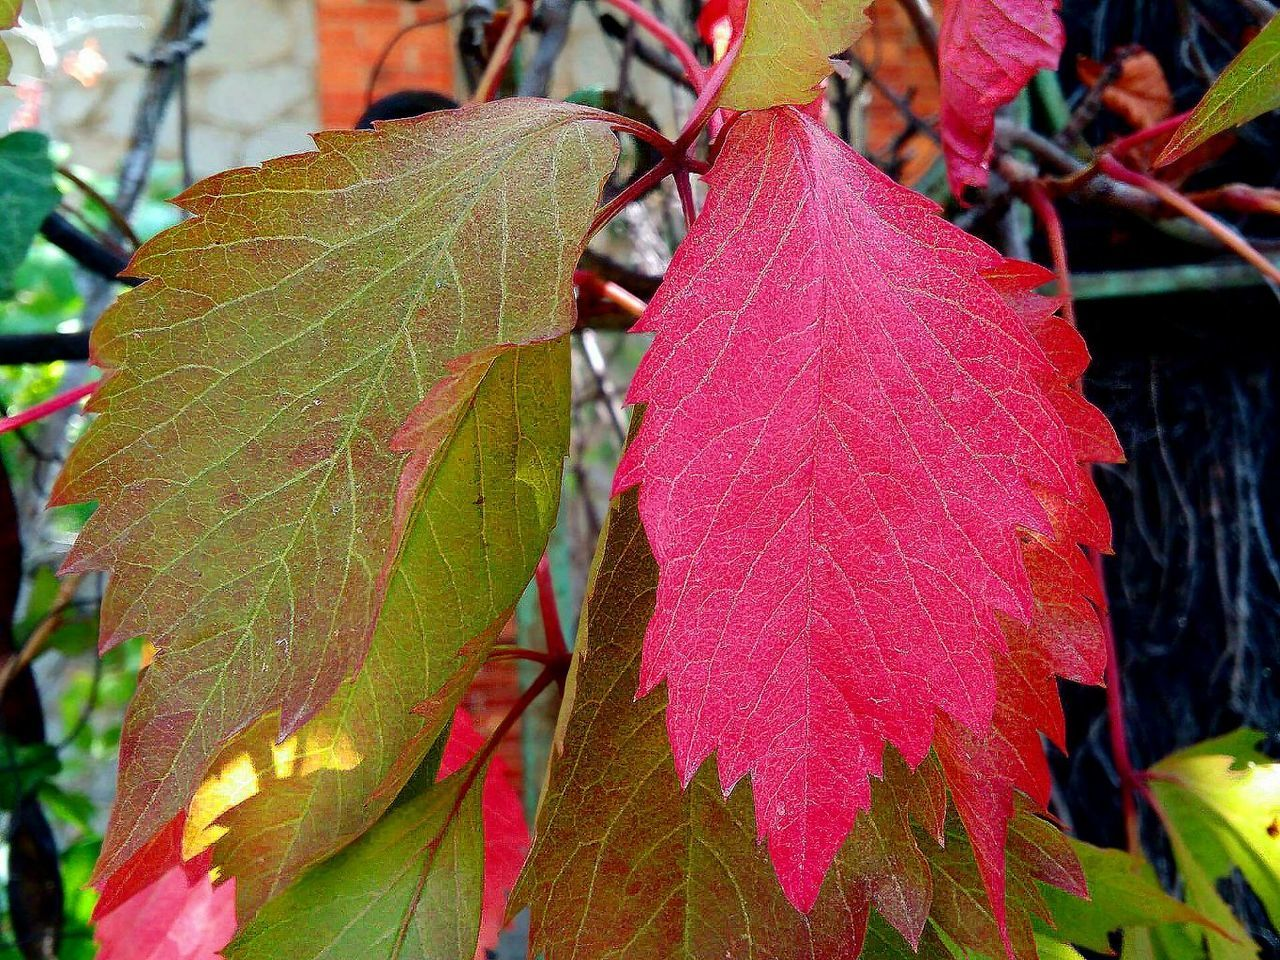 leaf, autumn, change, growth, day, close-up, nature, beauty in nature, outdoors, focus on foreground, fragility, maple leaf, no people, plant, branch, freshness, flower, maple, flower head